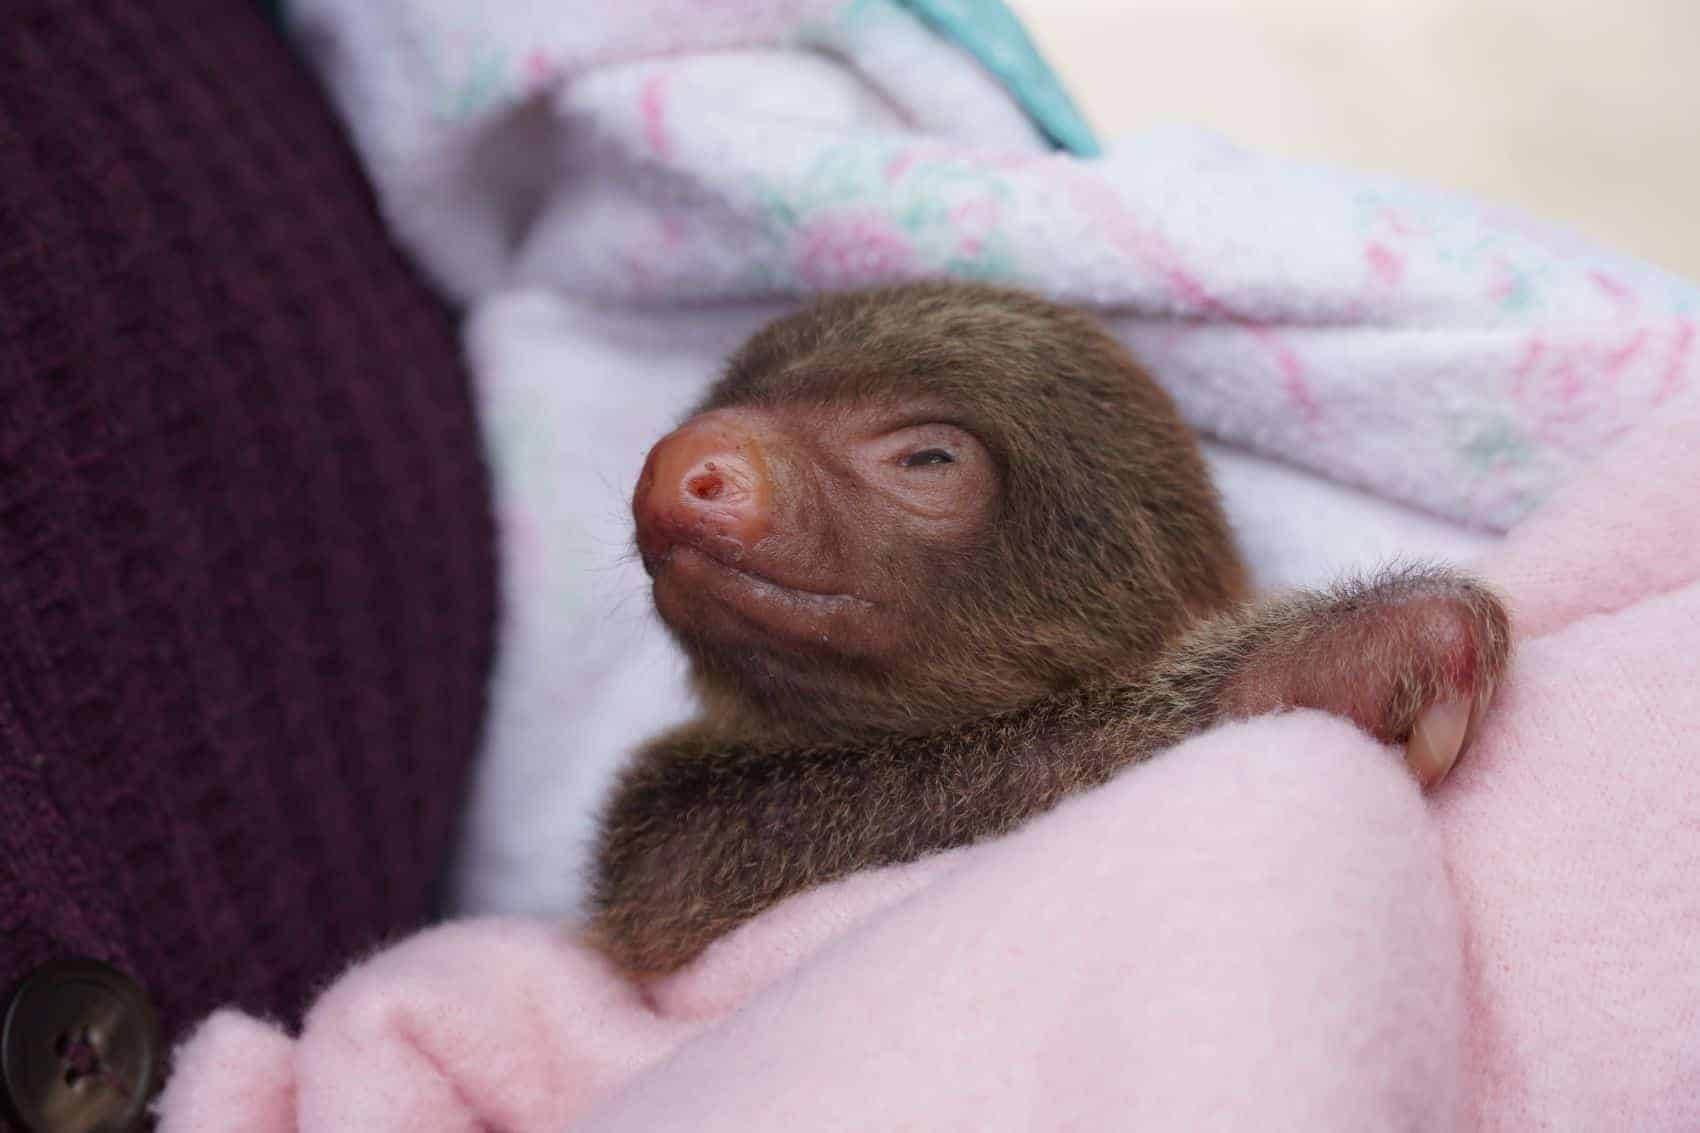 Shell the sloth at Toucan Rescue Ranch in Costa Rica.